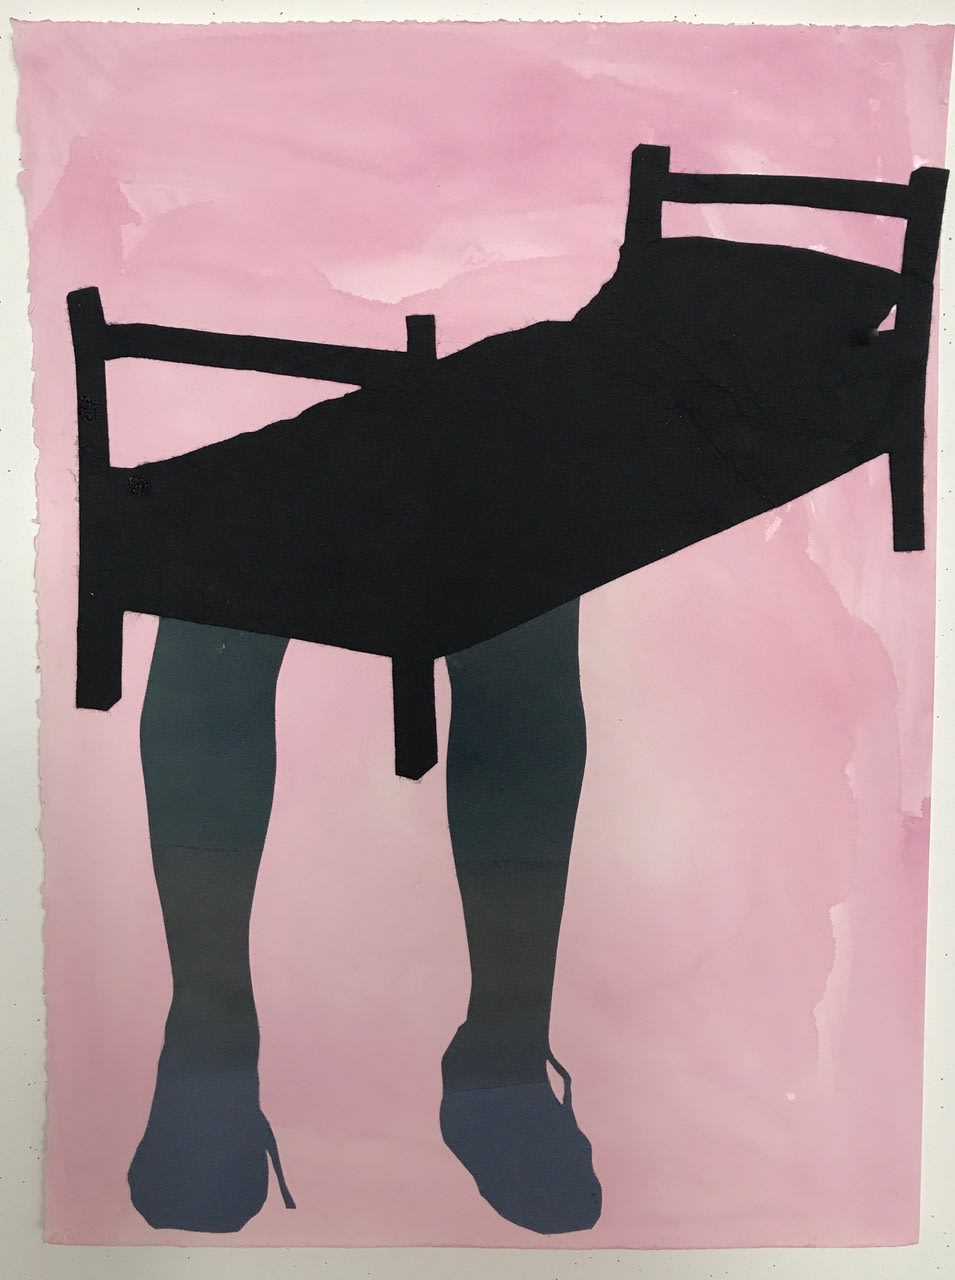 Sally Smart, The Choreography of Cutting (Pink Hand), 2014